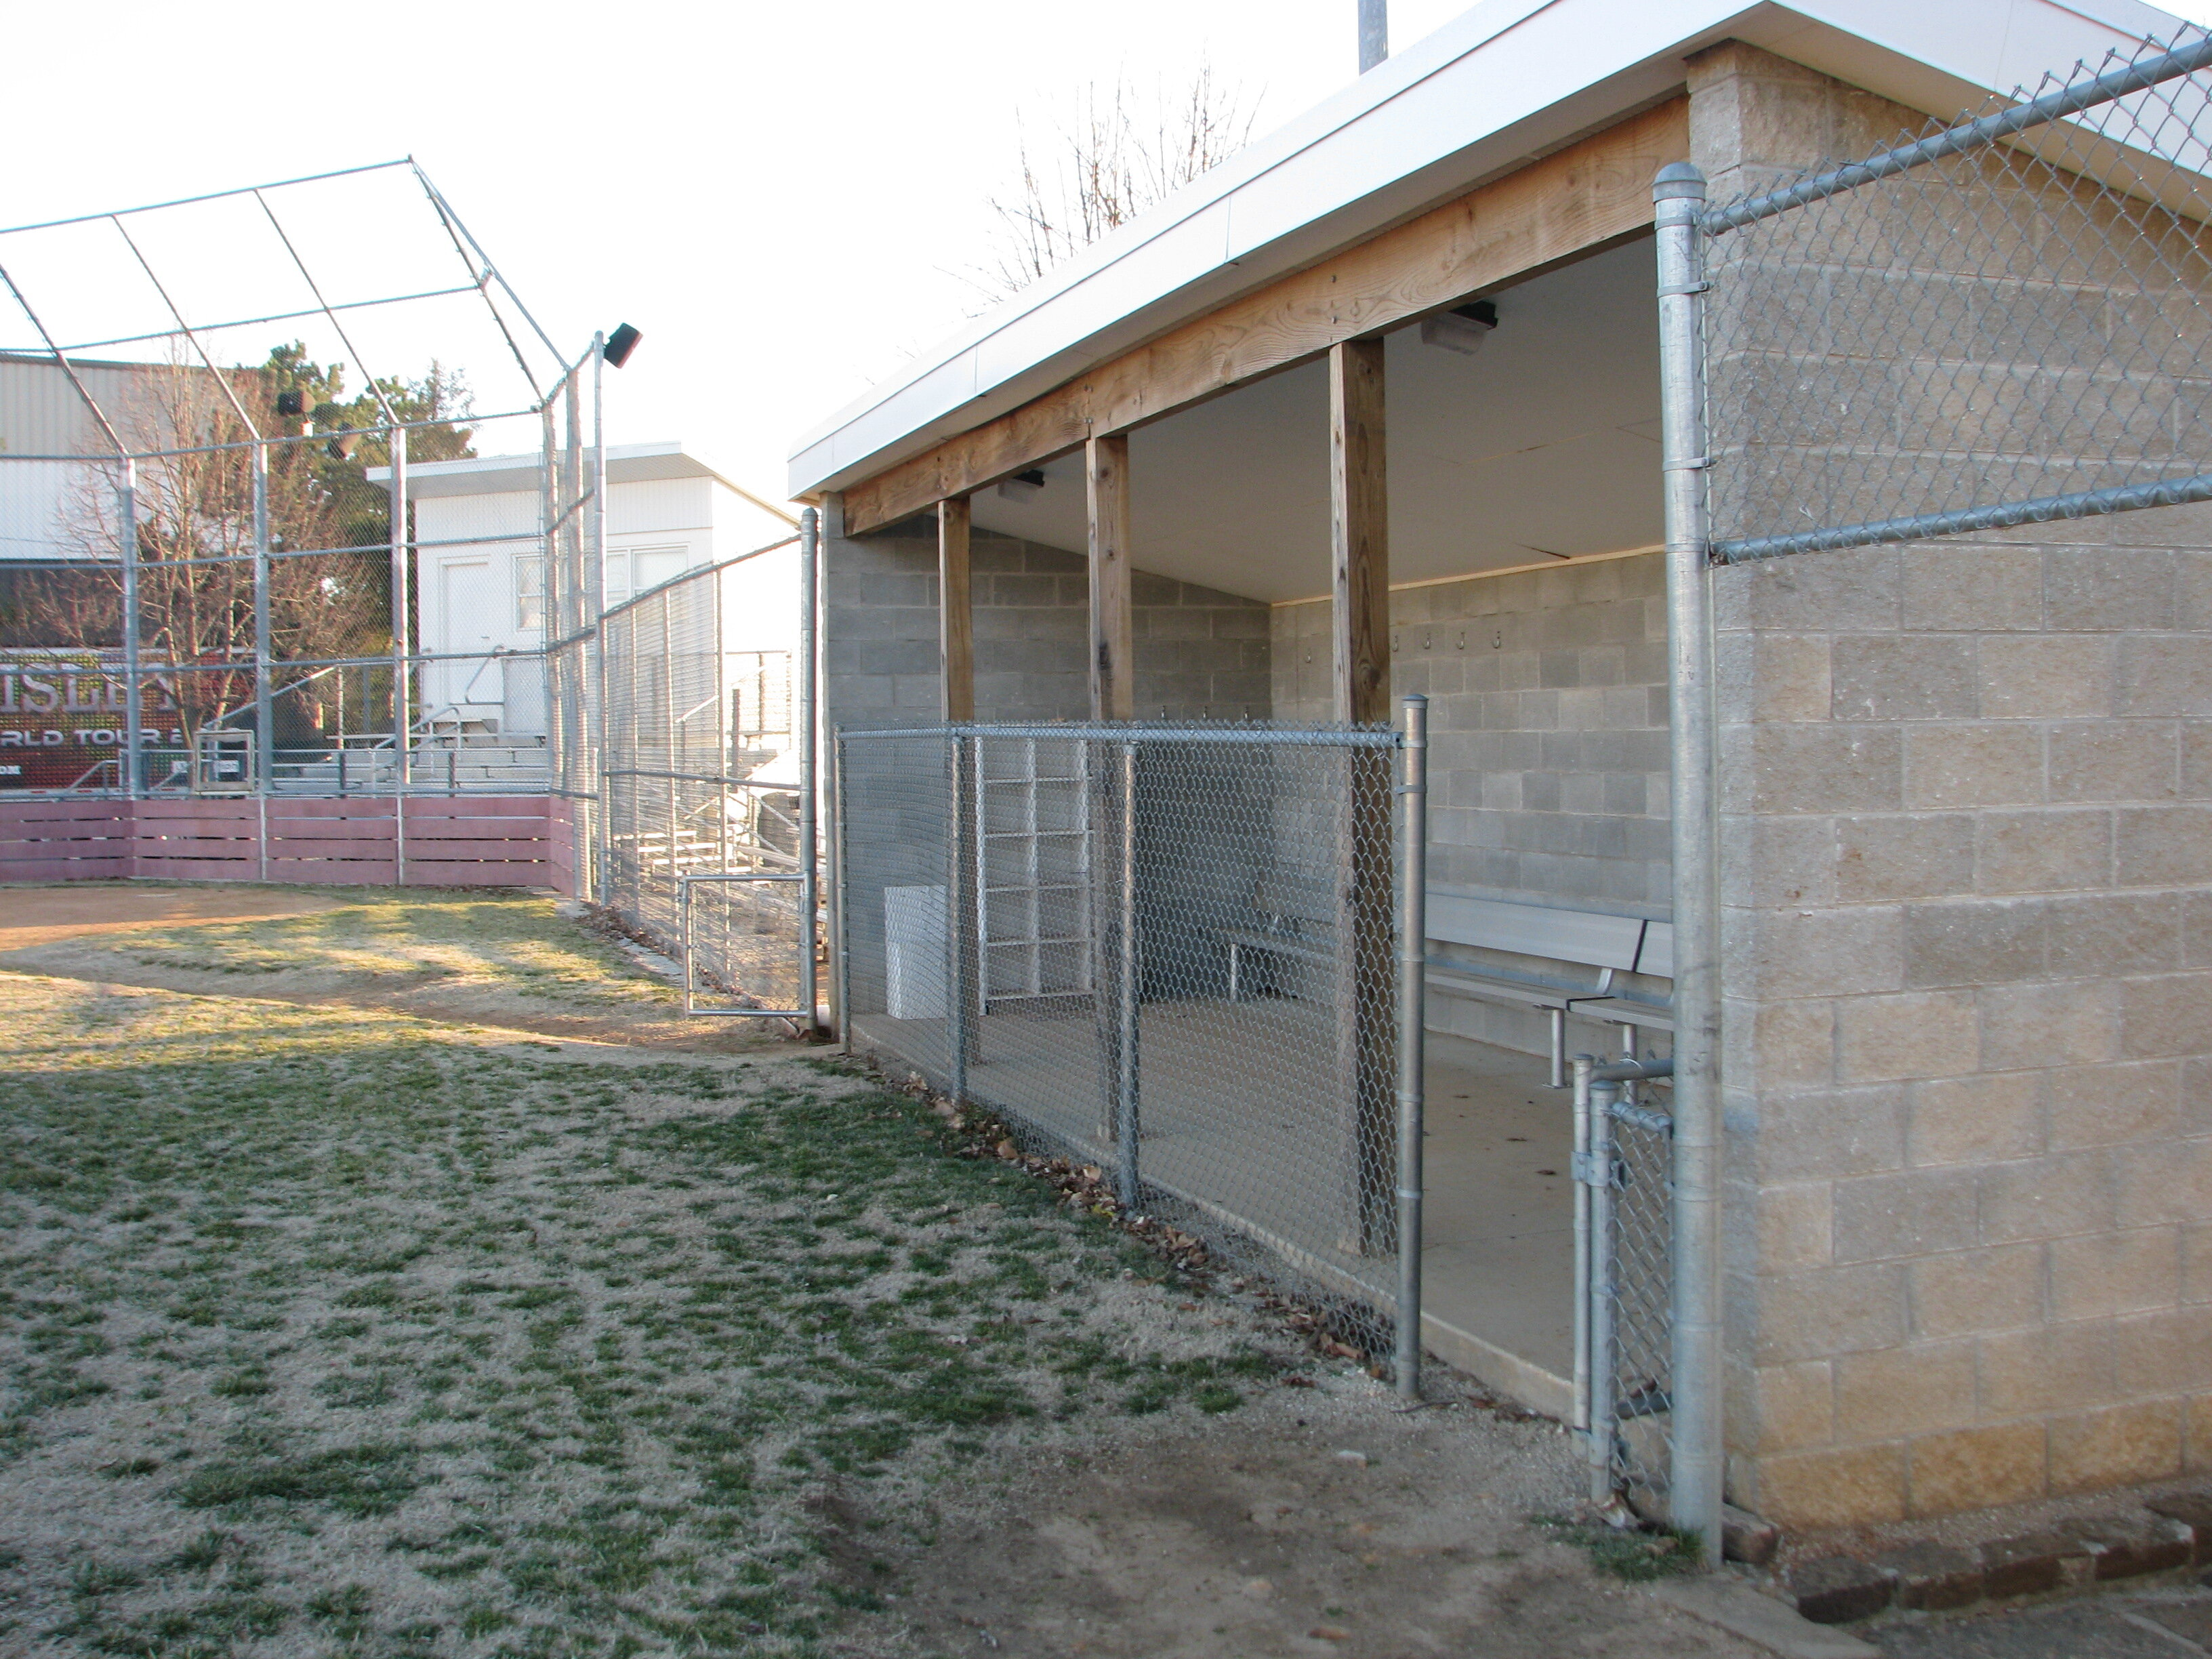 MSU Softball Dugouts - Friga INC